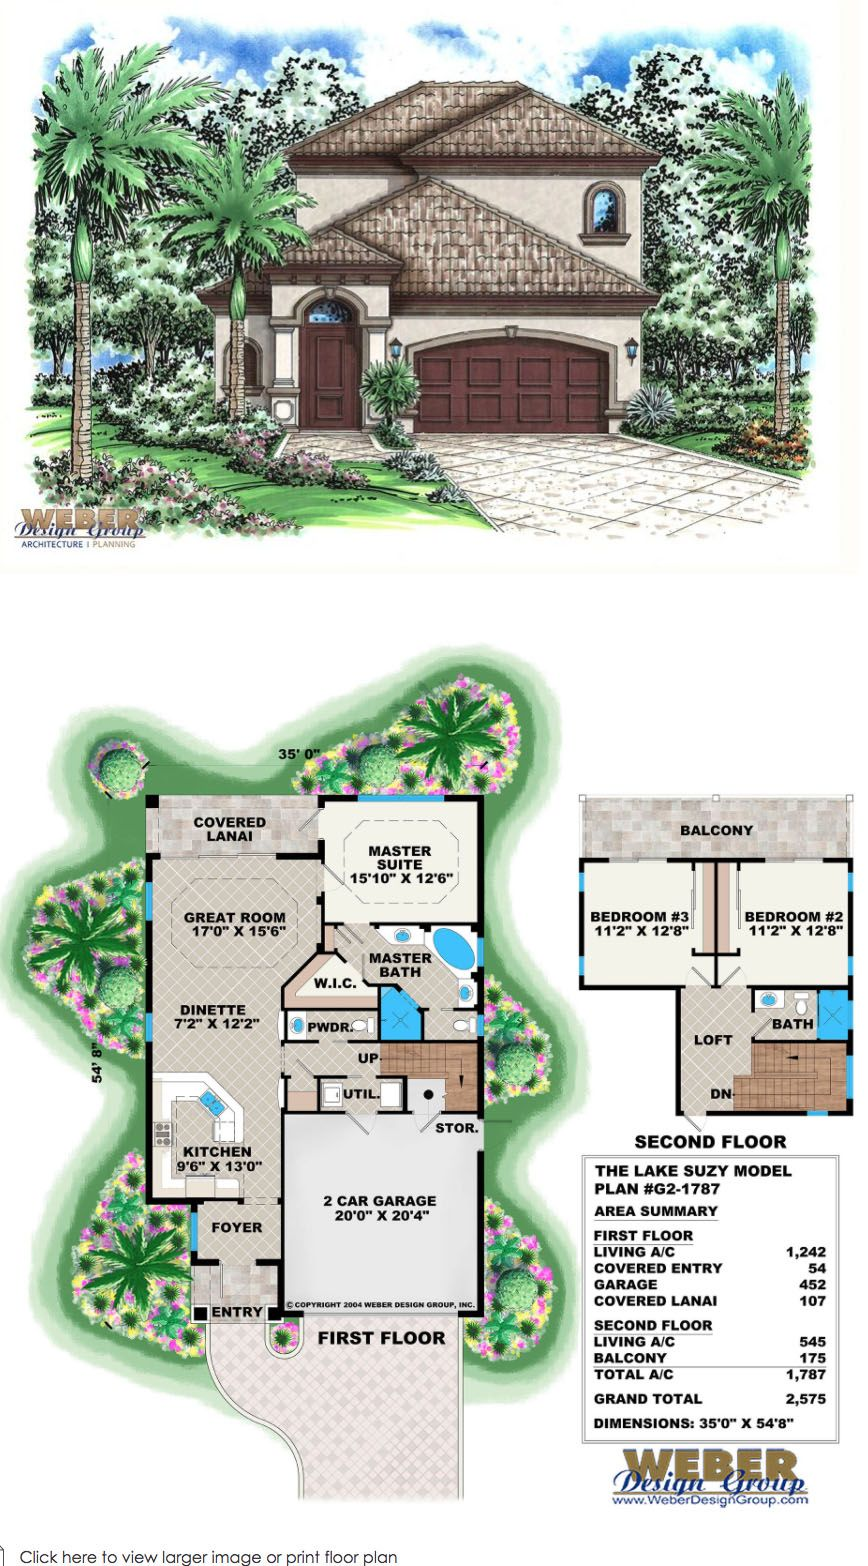 Mediterranean House Plan Small Narrow Lot 2 Story Home Floor Plan Mediterranean House Plans Mediterranean Homes Mediterranean Homes Exterior